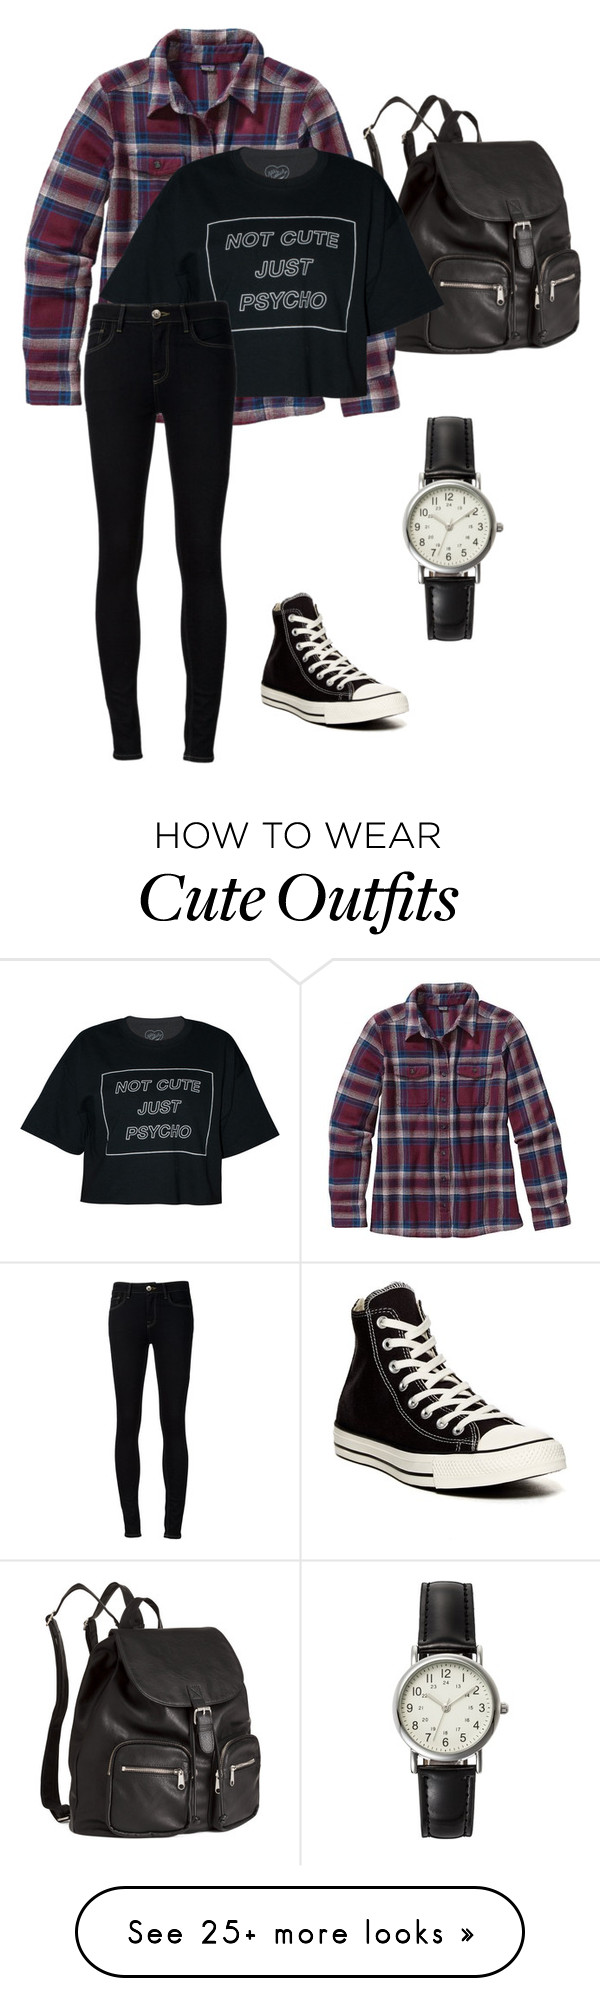 """Stiles stilinski inspired outfit"" by lexi-tolhurst on Polyvore featuring H&M, Patagonia, Ström, Converse and FOSSIL"